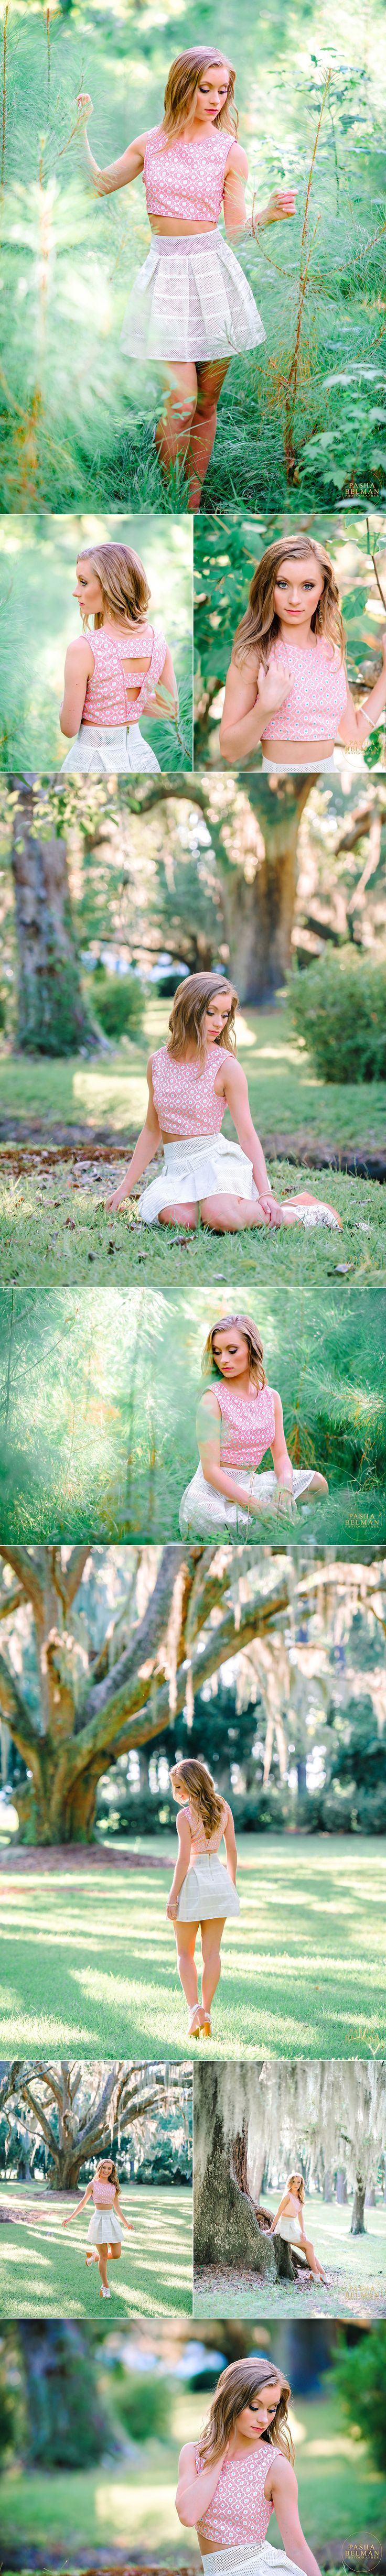 Senior Pictures | Senior Photography | High School Senior Photographers in Charleston and Myrtle Beach | Pasha Belman Photography High School Senior Picture Ideas for Girls Women, Men and Kids Outfit Ideas on our website at 7ootd.com #ootd #7ootd